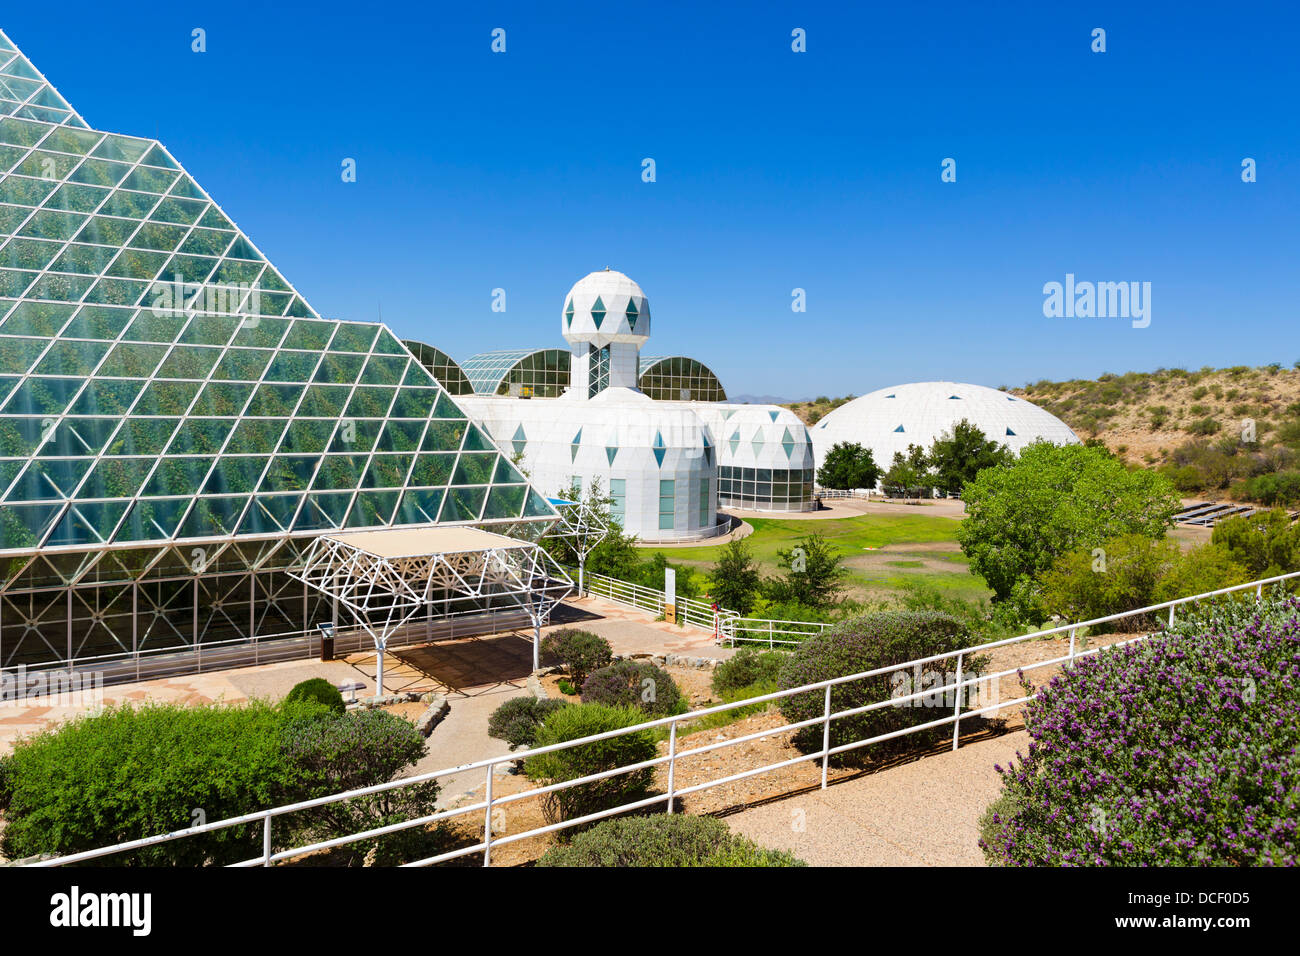 Biosphere 2 Earth Systems Science Research Facility at the University of Arizona, Oracle, near Tucson, Arizona, - Stock Image